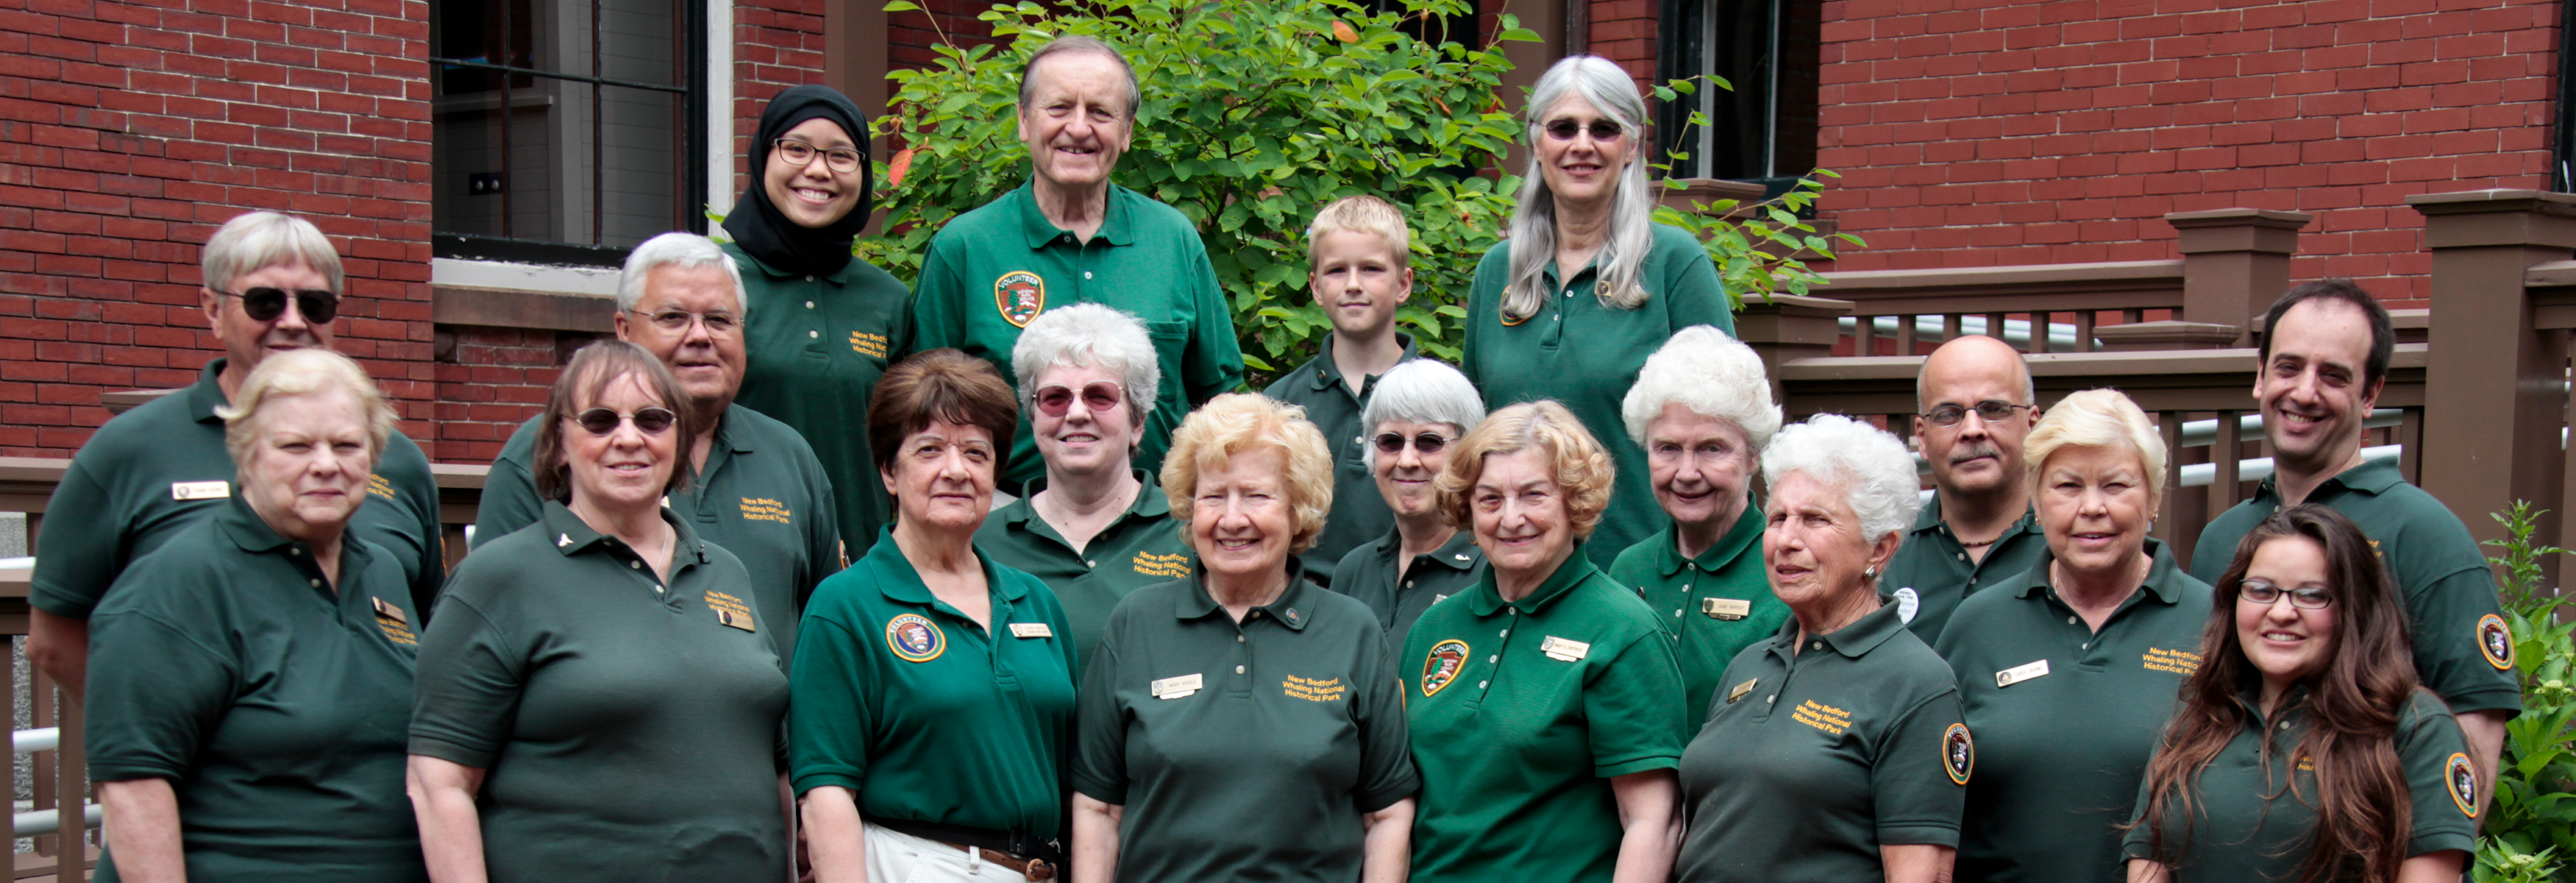 New Bedford Volunteers from 2011